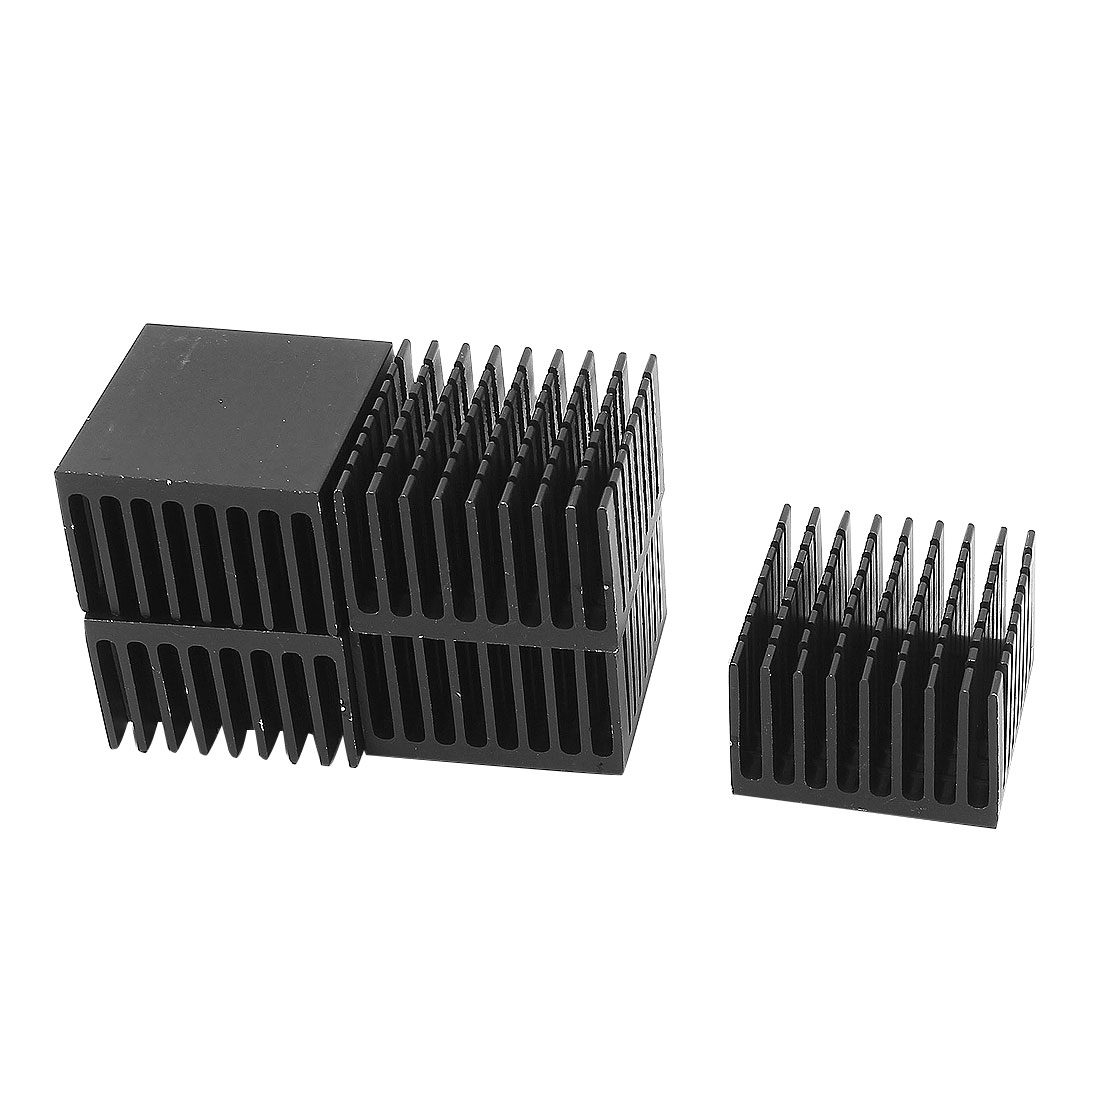 5 Pcs 37x37x24mm Black Aluminium Slotted Heatsink Heat Sink Diffuse Cooling Fin for LED